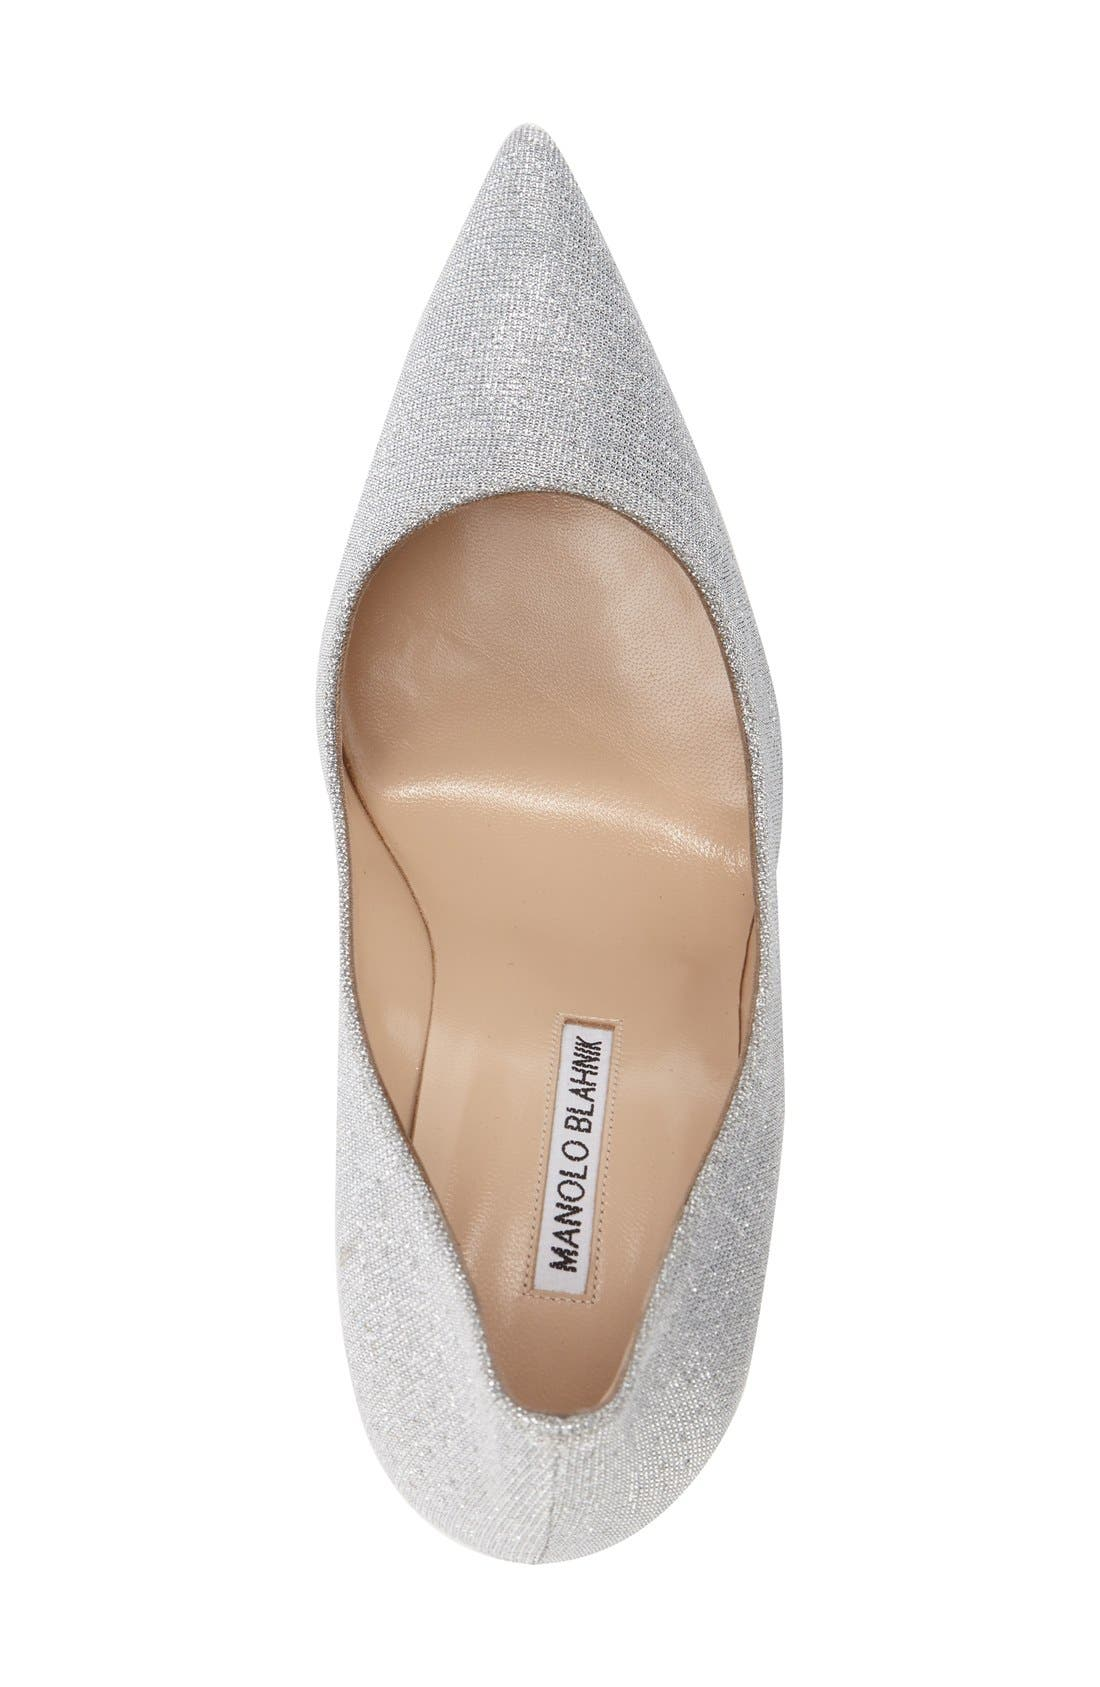 BB Pointy Toe Pump,                             Alternate thumbnail 35, color,